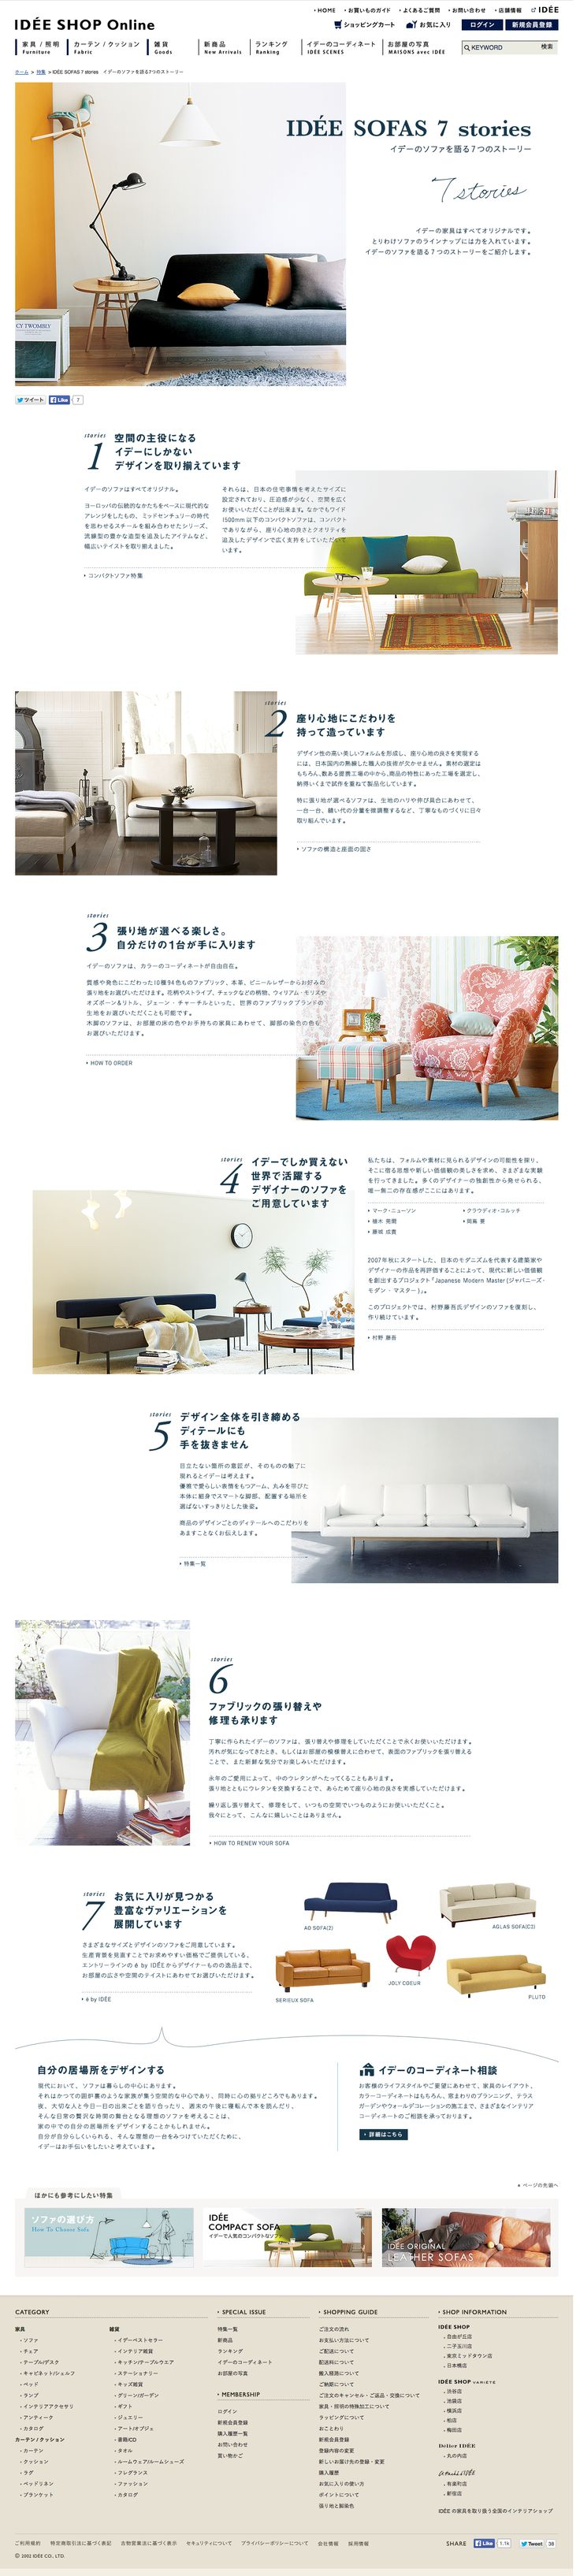 http://www.idee-online.com/shop/features/083_sofas_7stories.aspx?gclid=CPPovfDEncICFdcTvQodupgAFw